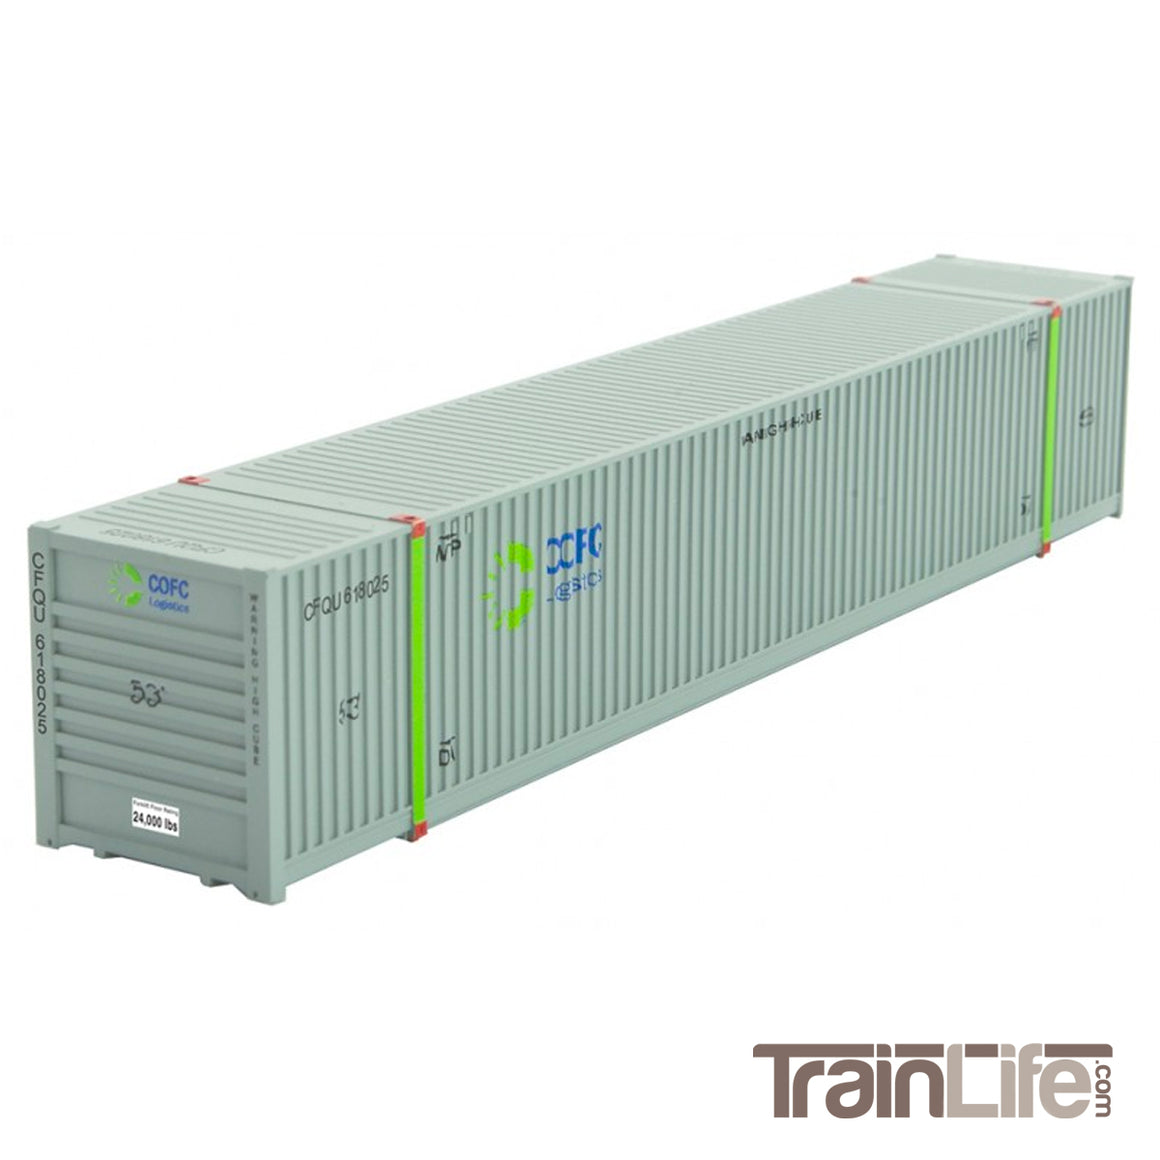 N Scale: 53' Corrugated Container - COFC Logistics